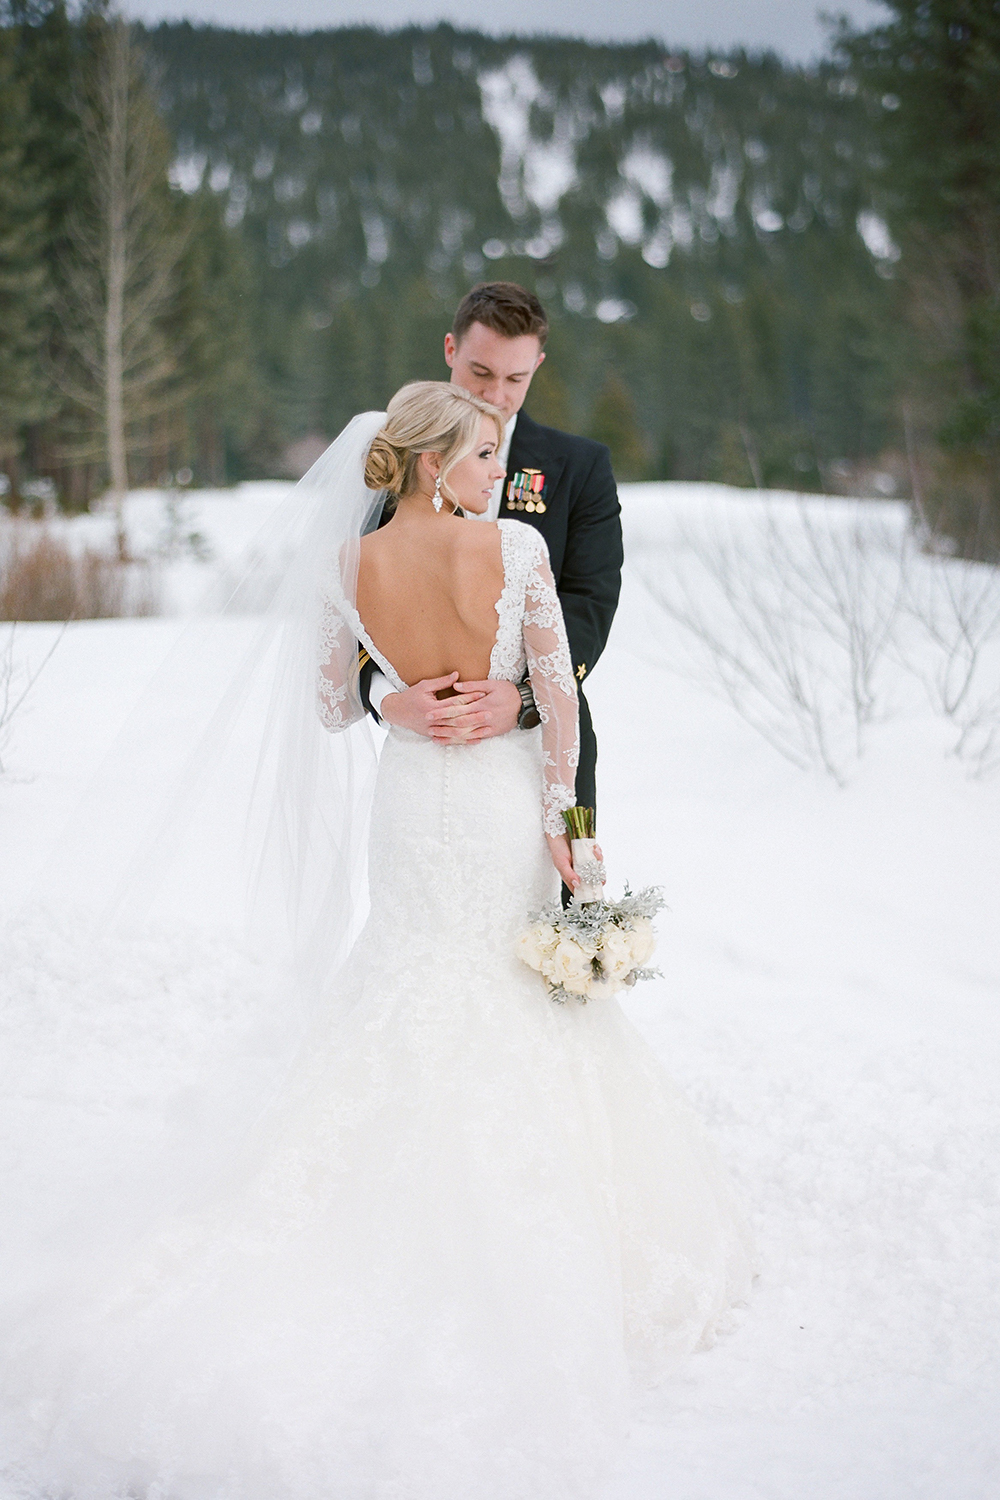 Our Winter Wonderland Wedding